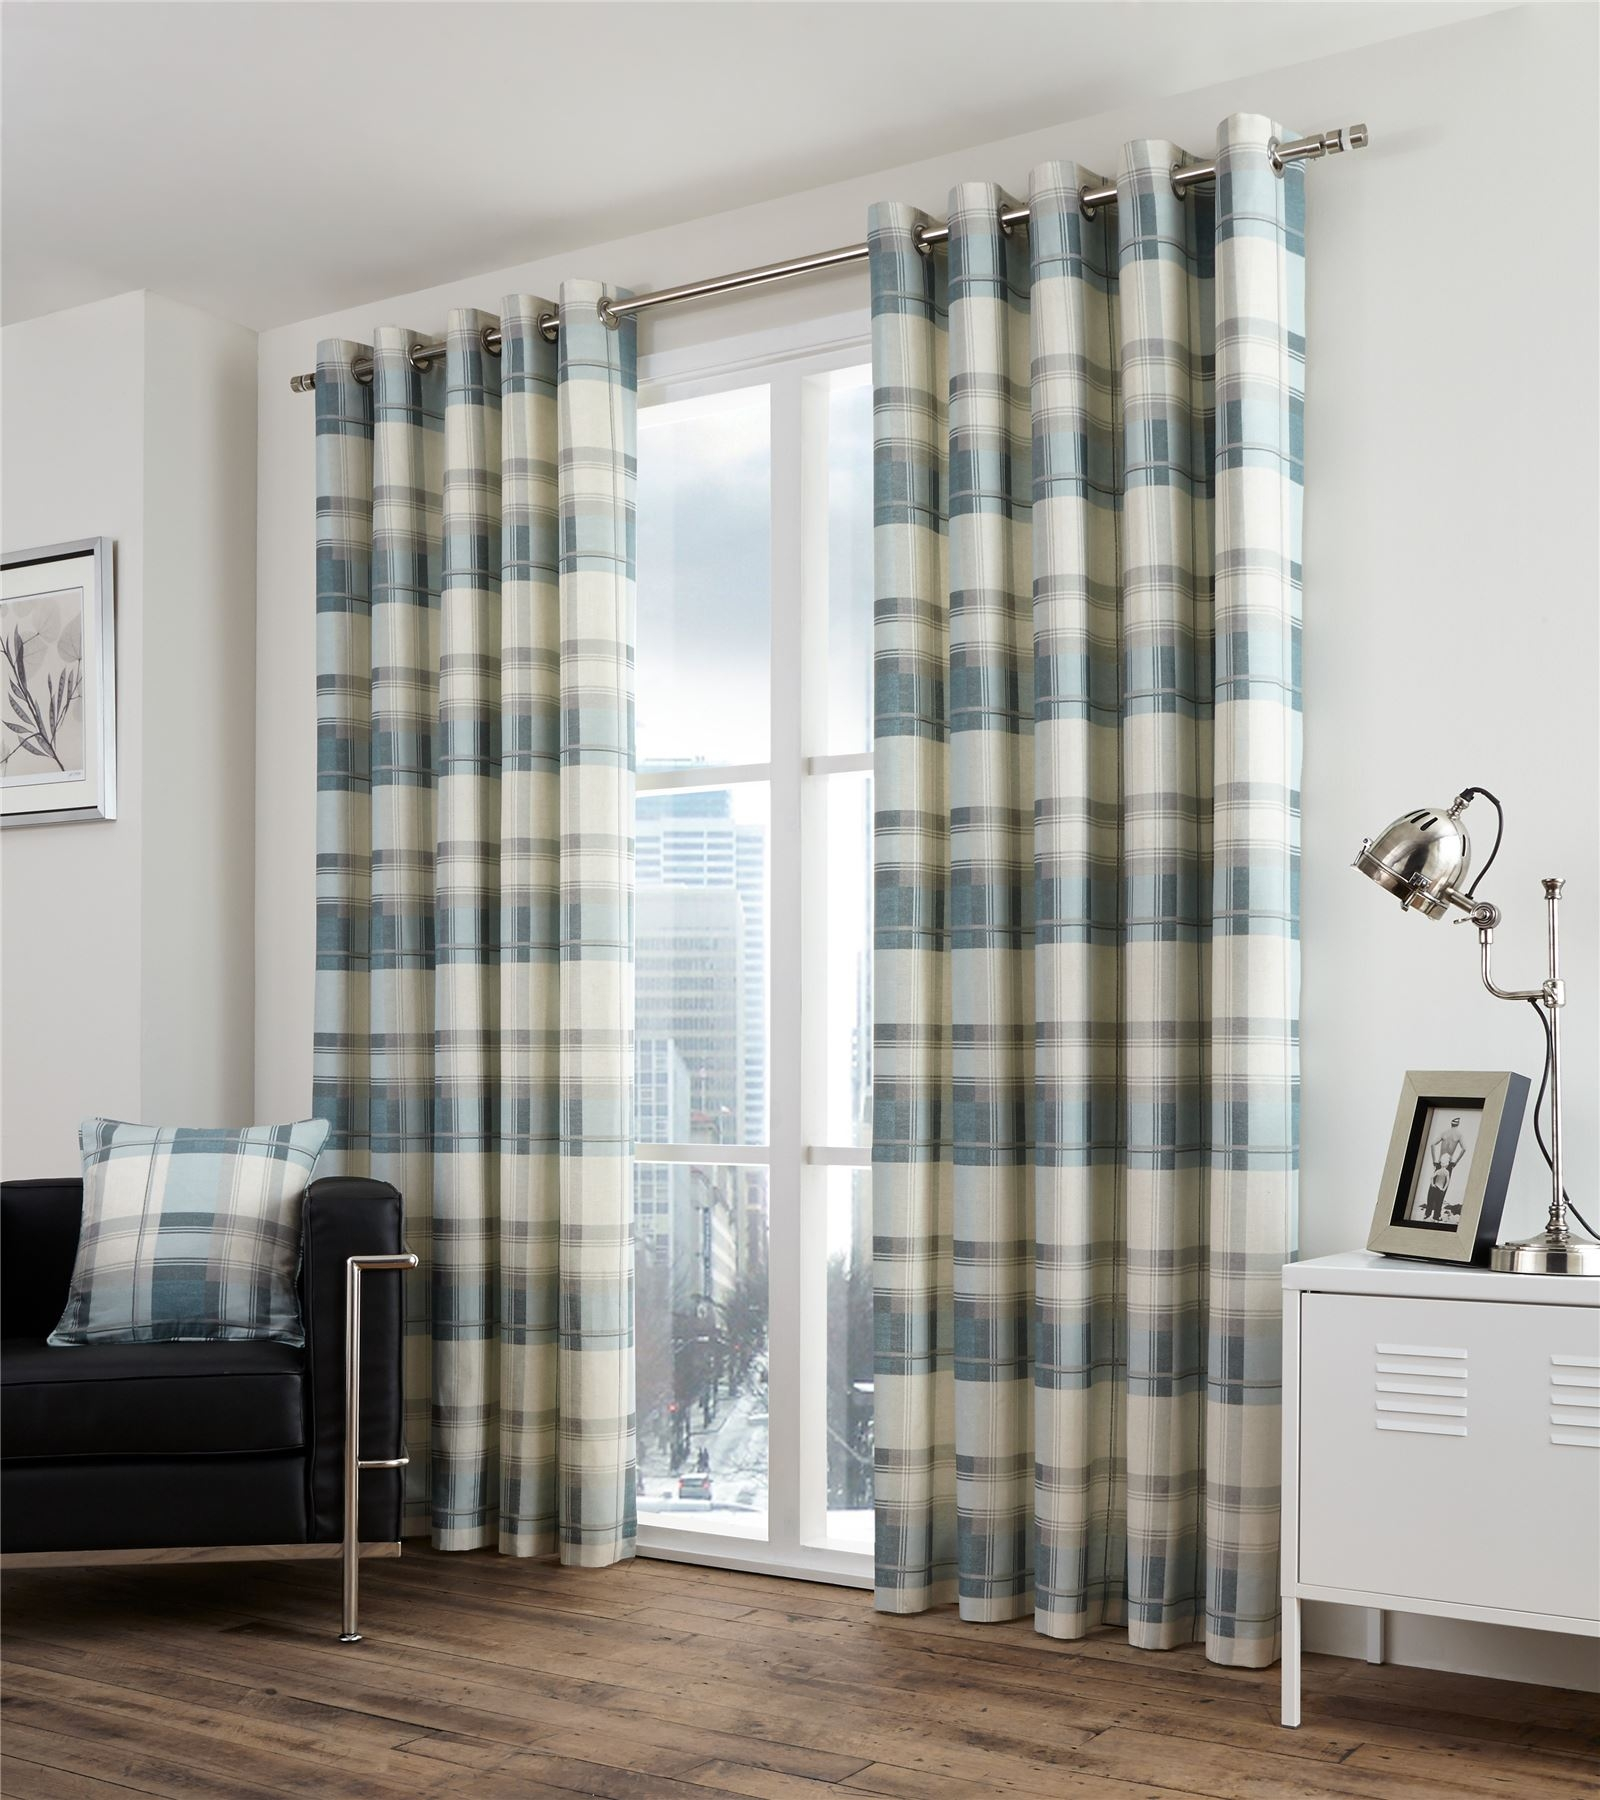 Plaid Check Teal Beige Lined 100 Cotton Ring Top Curtains 7 Intended For Lined Cotton Curtains (Image 13 of 15)